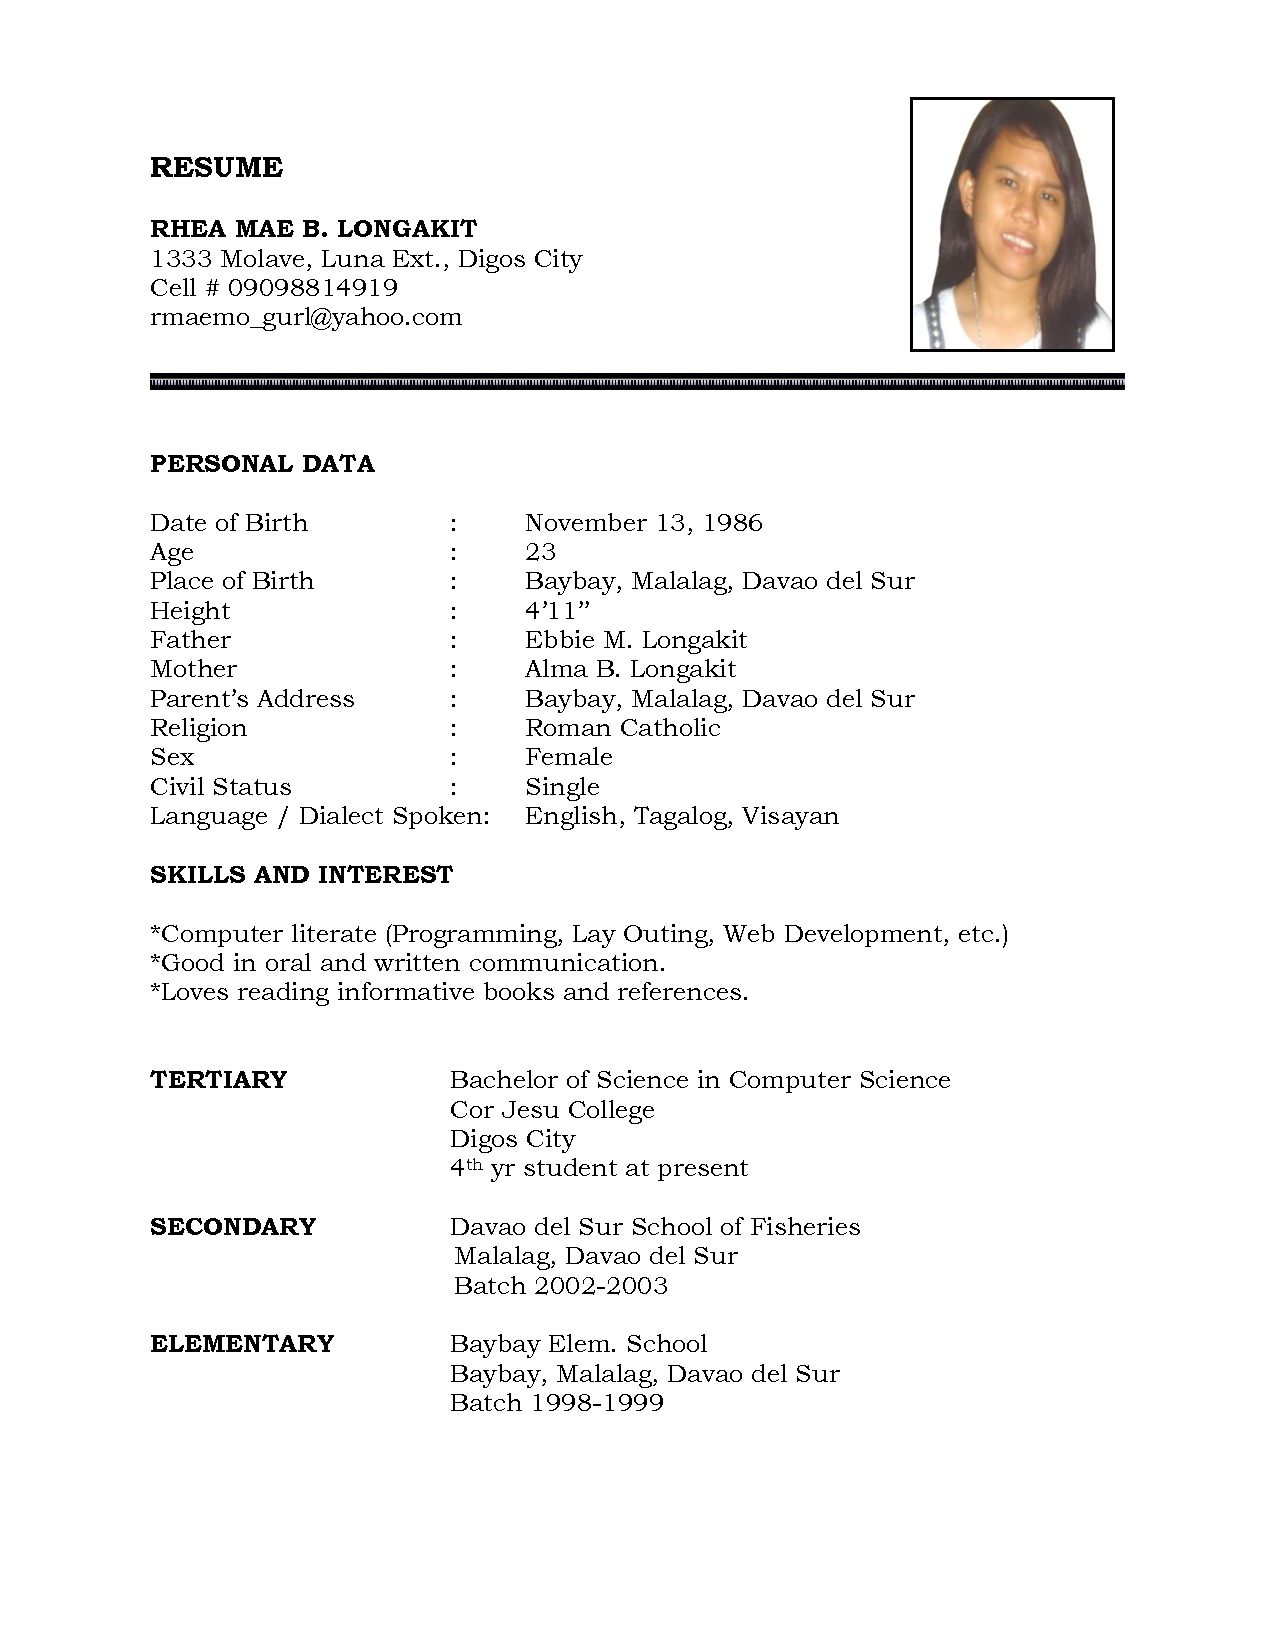 free resume templates sample actors with interesting template - Personal Resume Templates